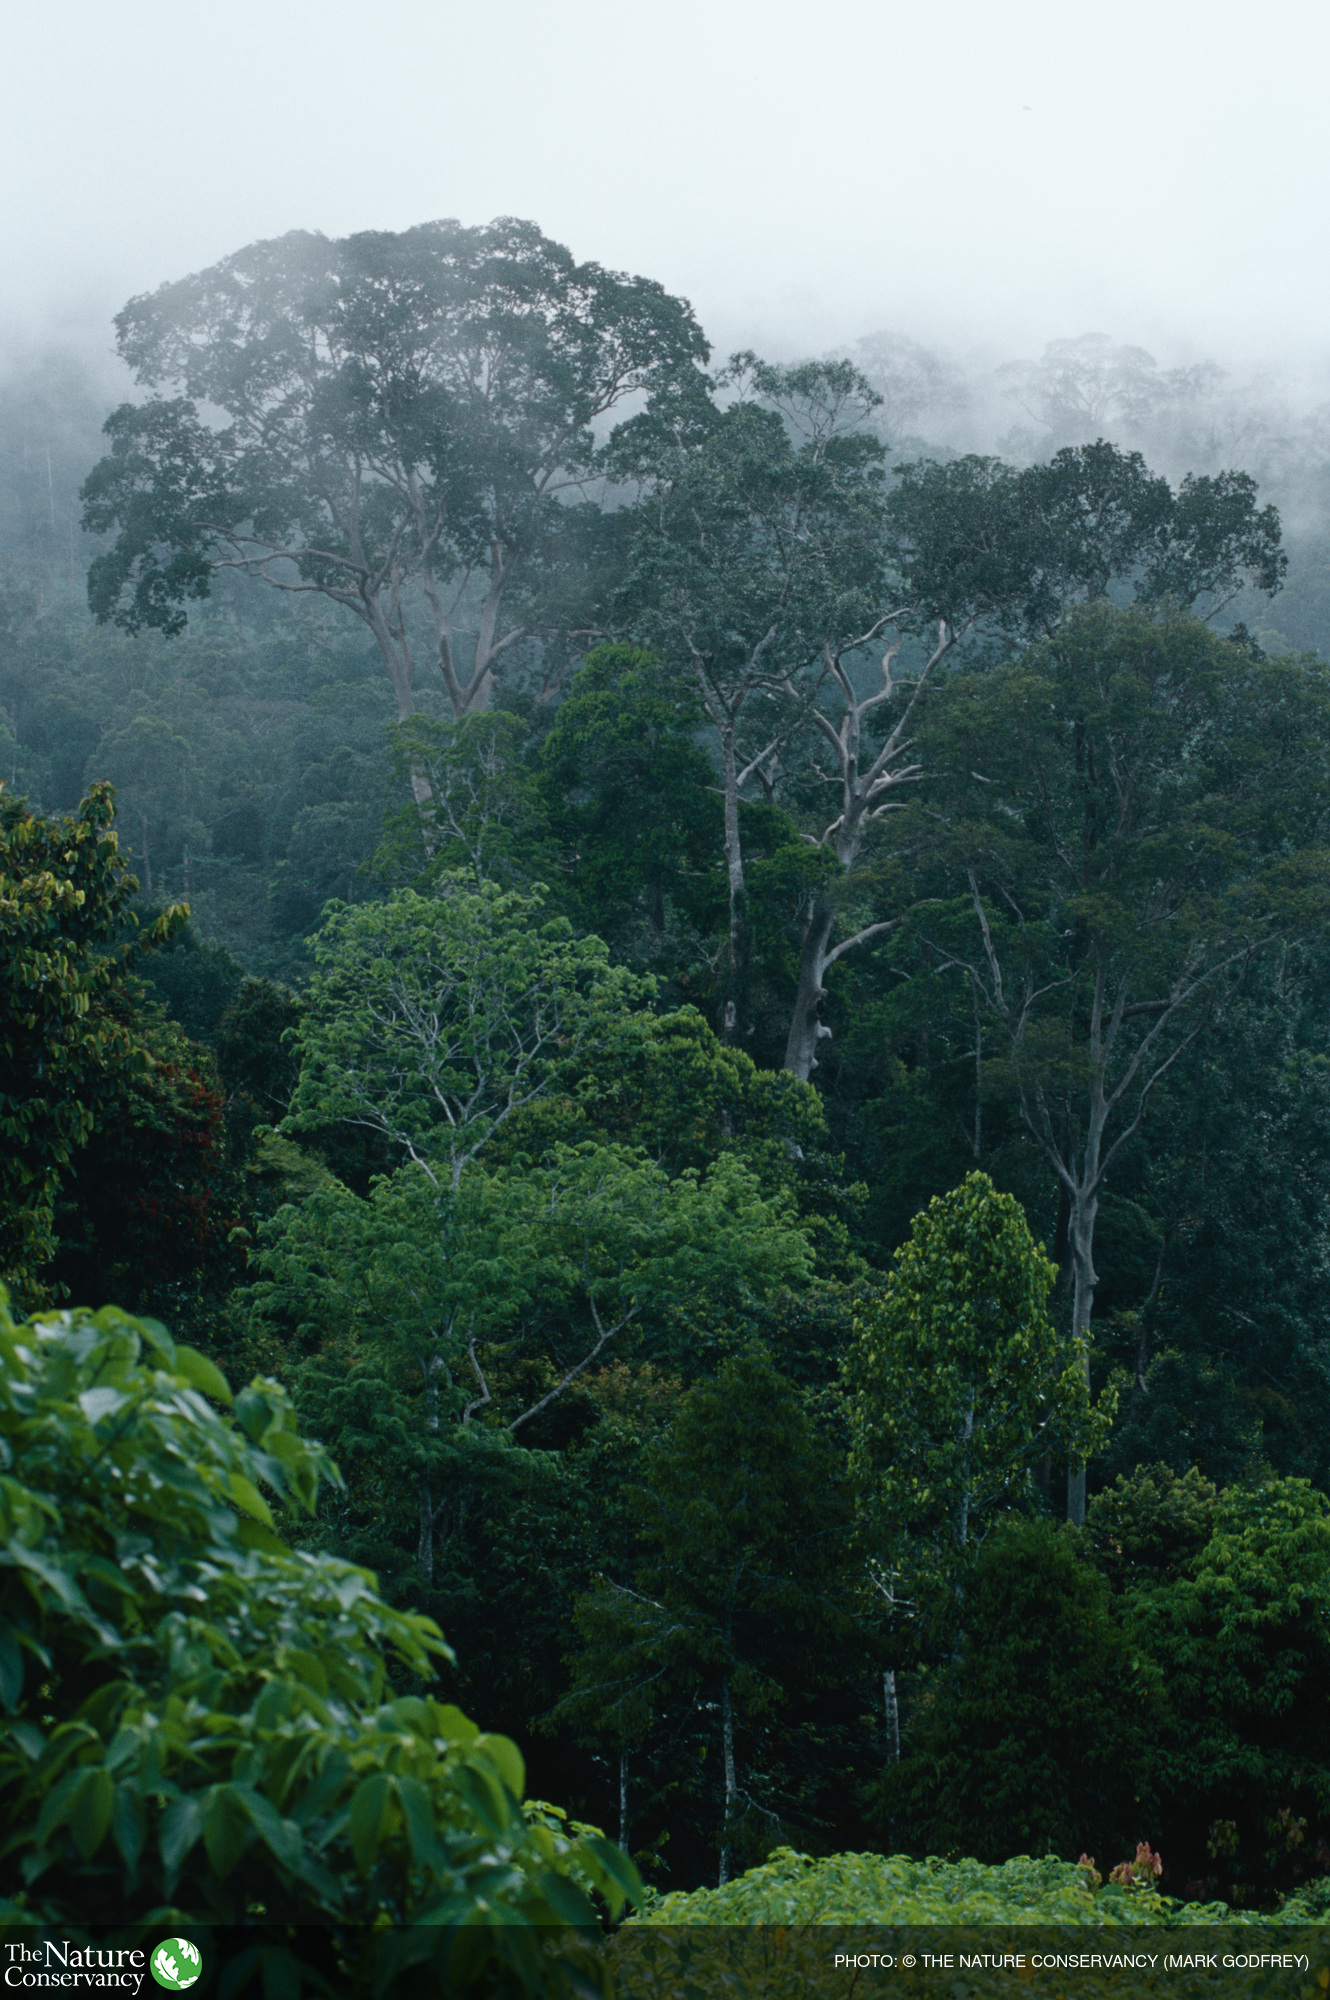 Image of forest canopy